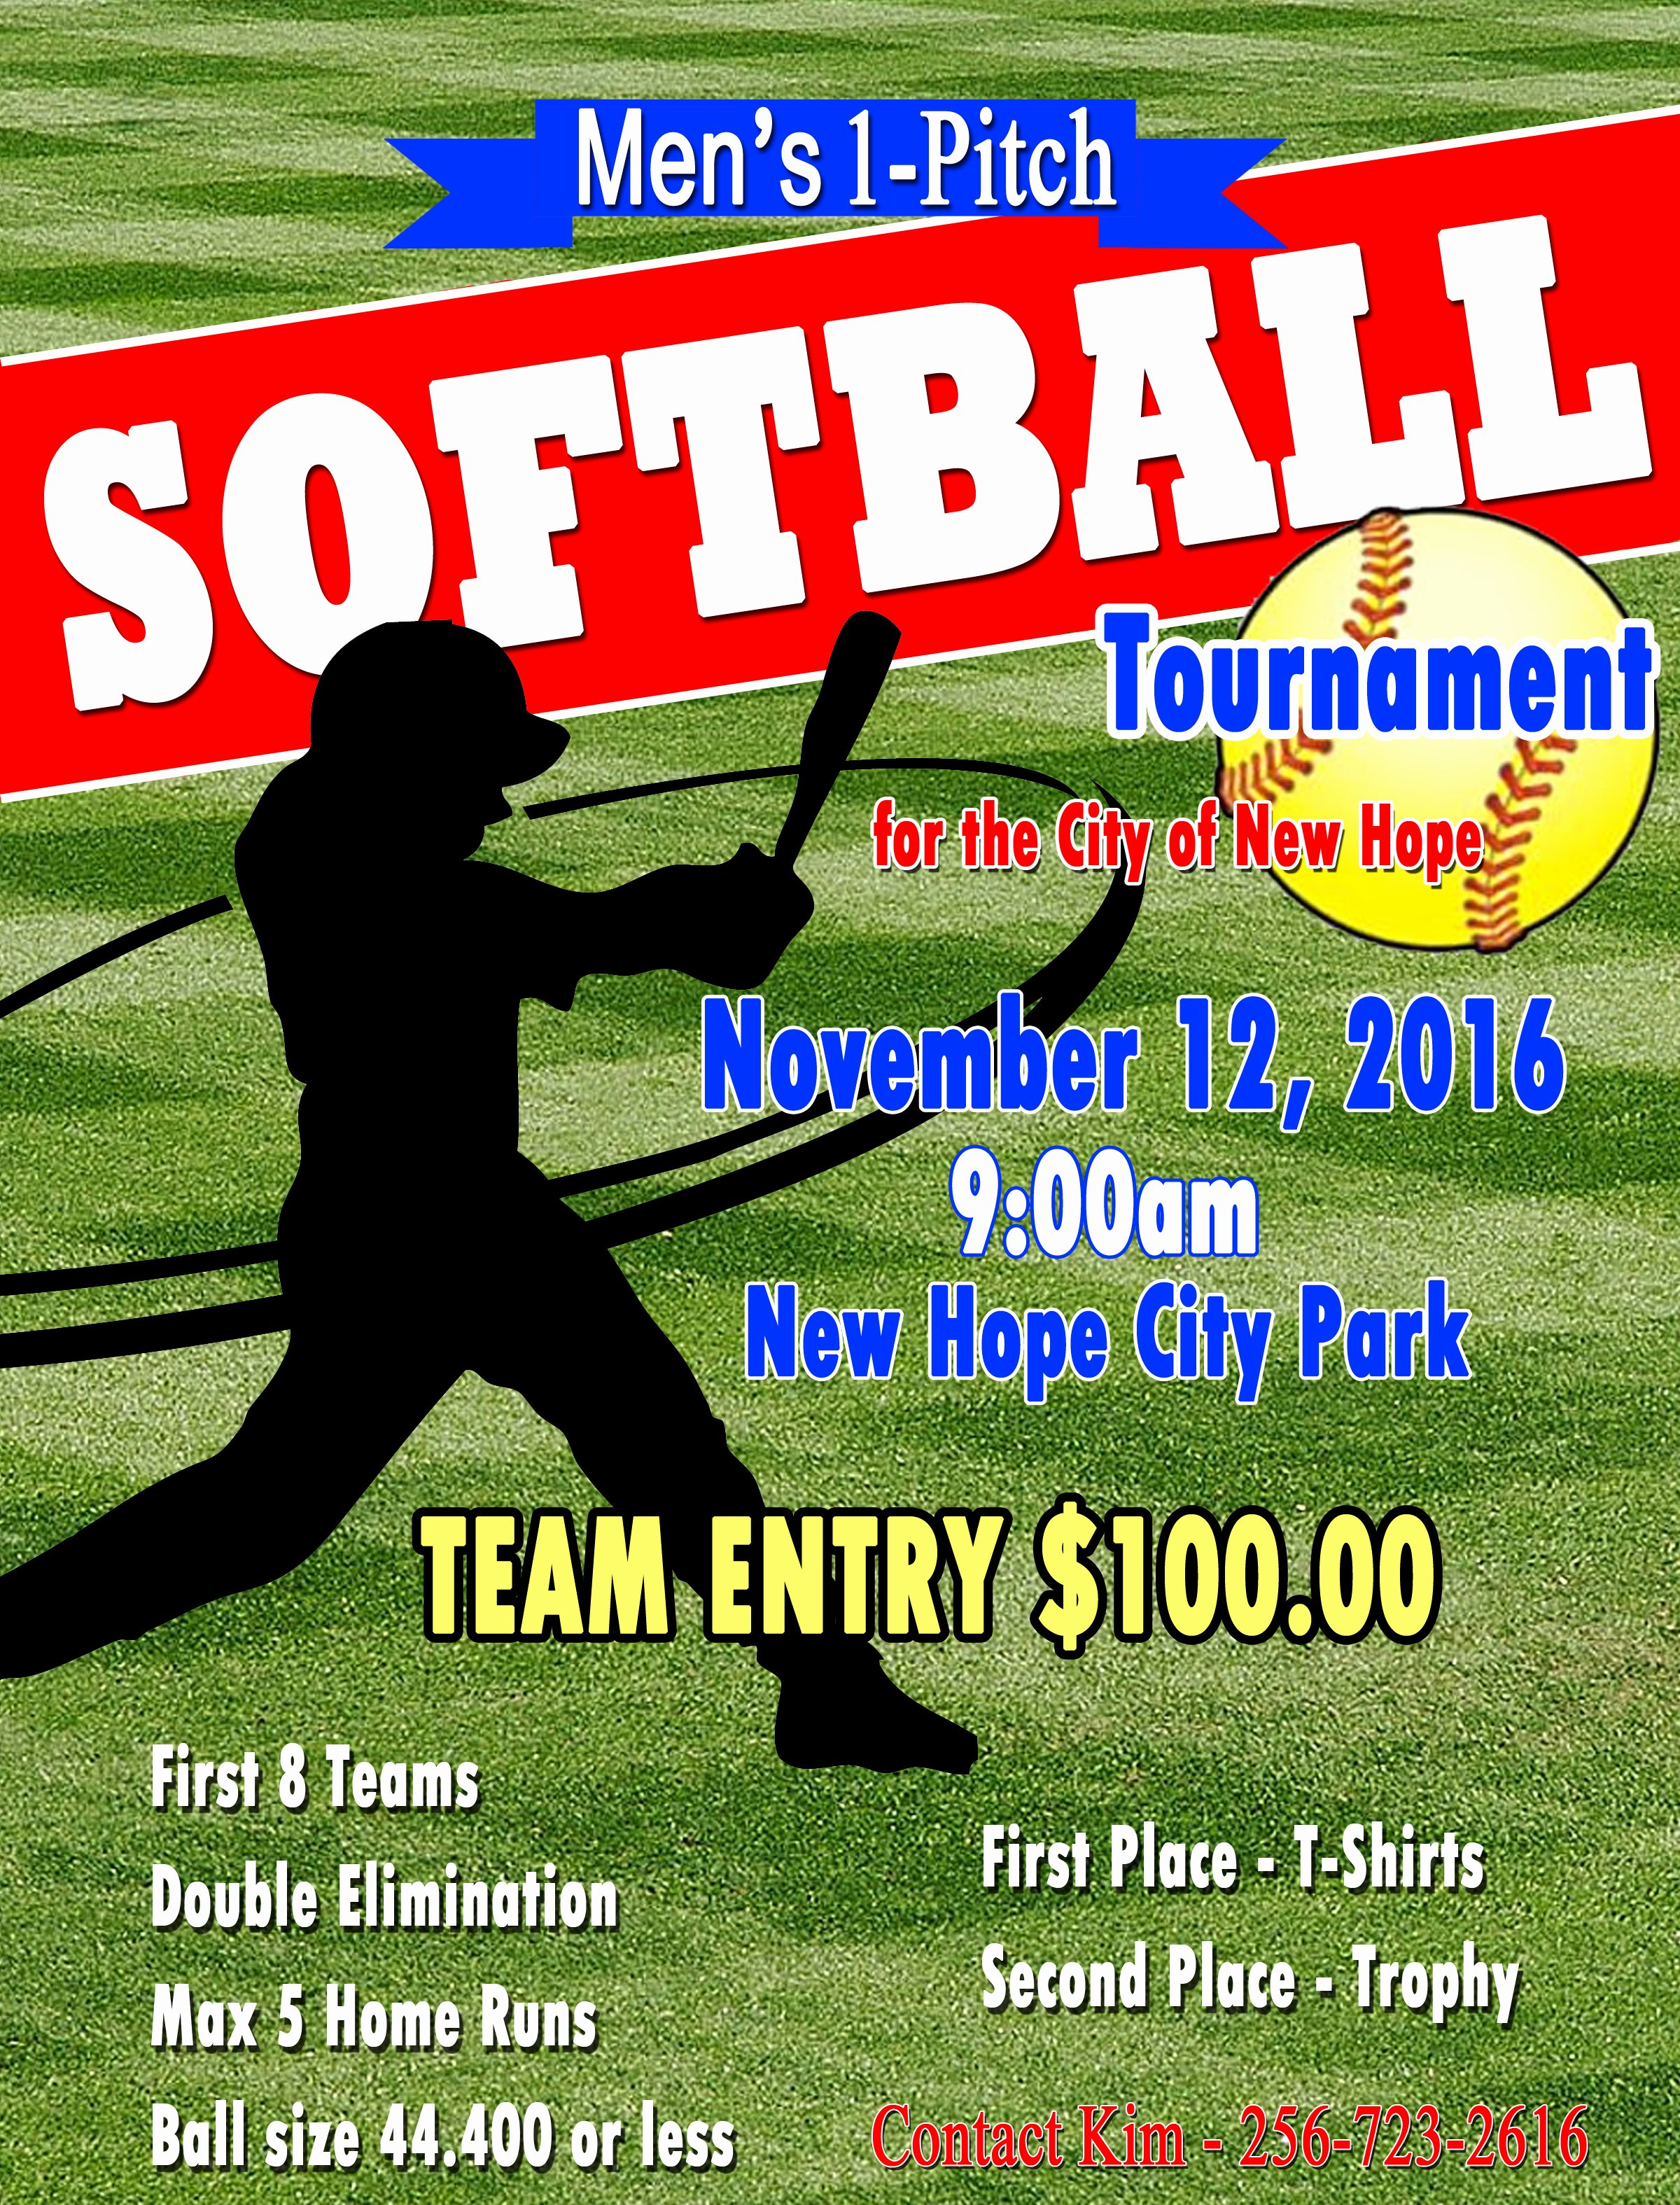 Softball tournament Flyer Template New City Of New Hope 1 Pitch softball tournament November 12th